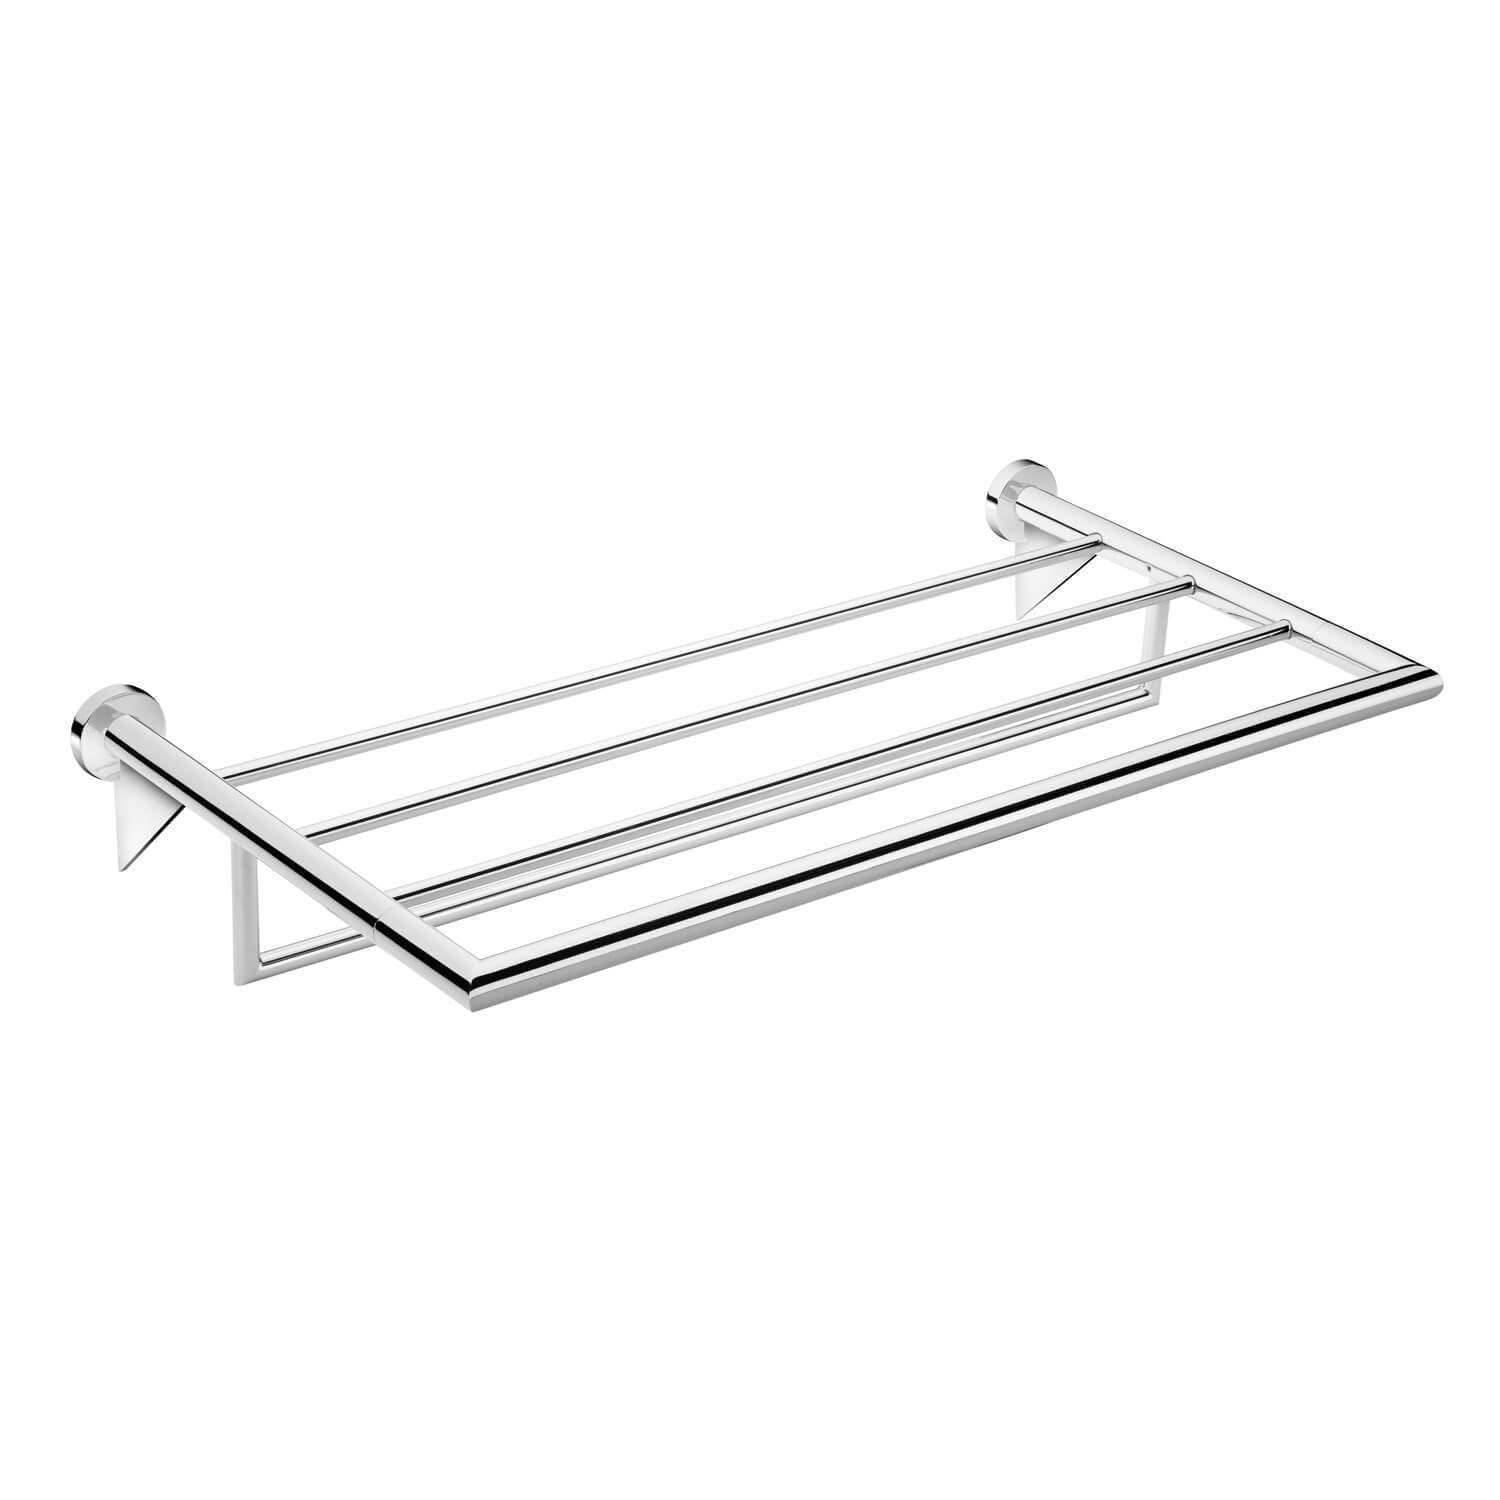 Pomdor Kubic Wall 23.6 in Chrome Towel Rack Bath Storage Shelf Hanging Organizer